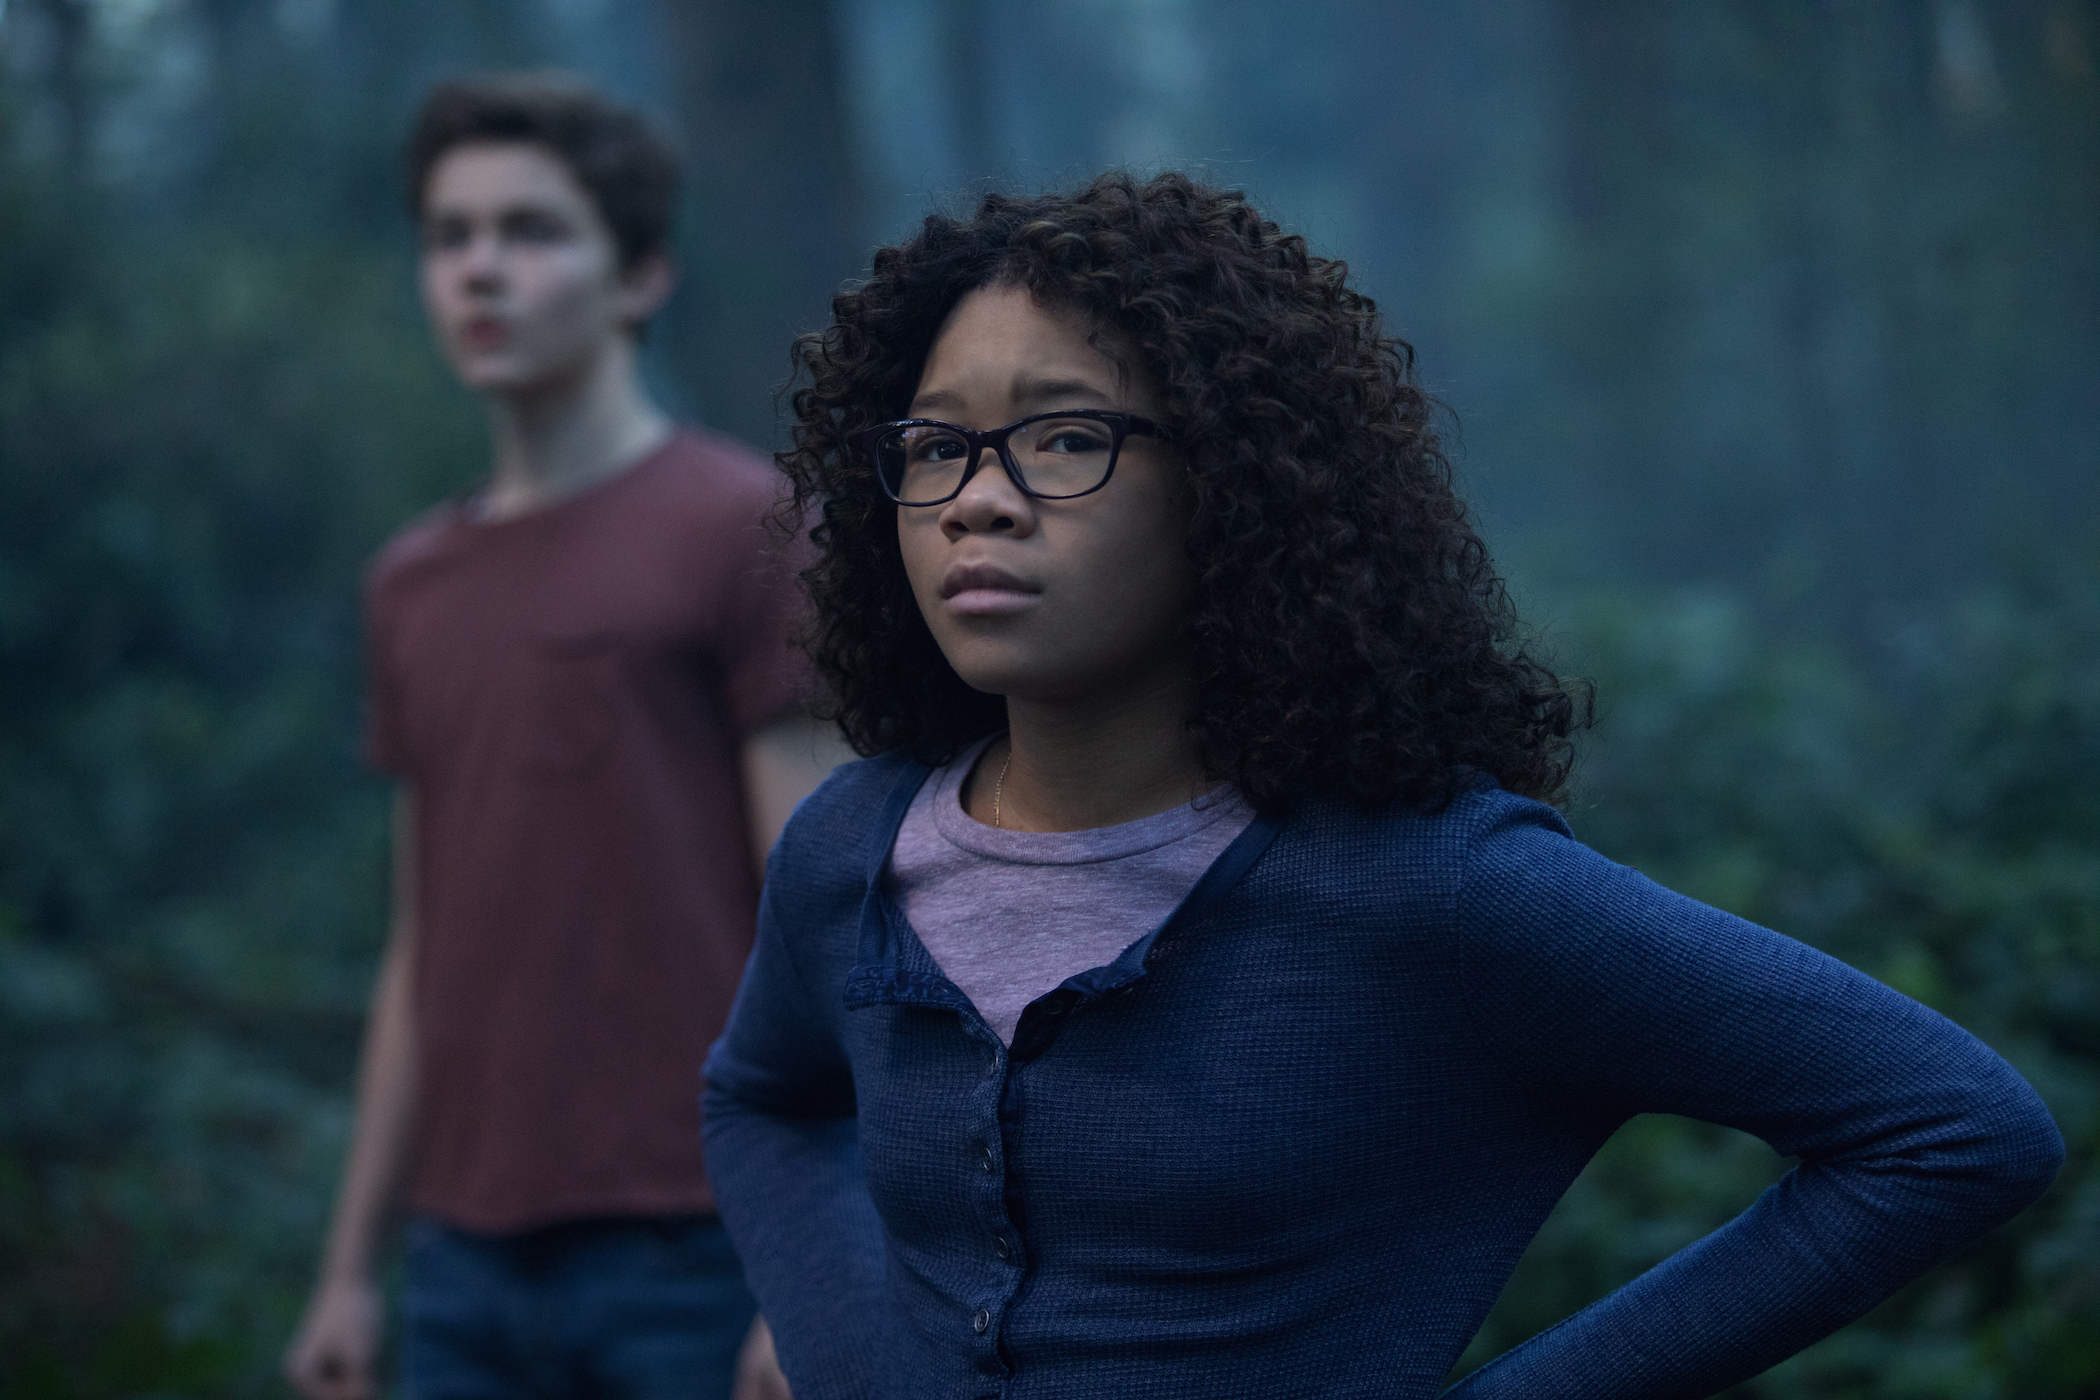 'A Wrinke In Time's' Storm Reid Says Why This Film Is Important For Girls